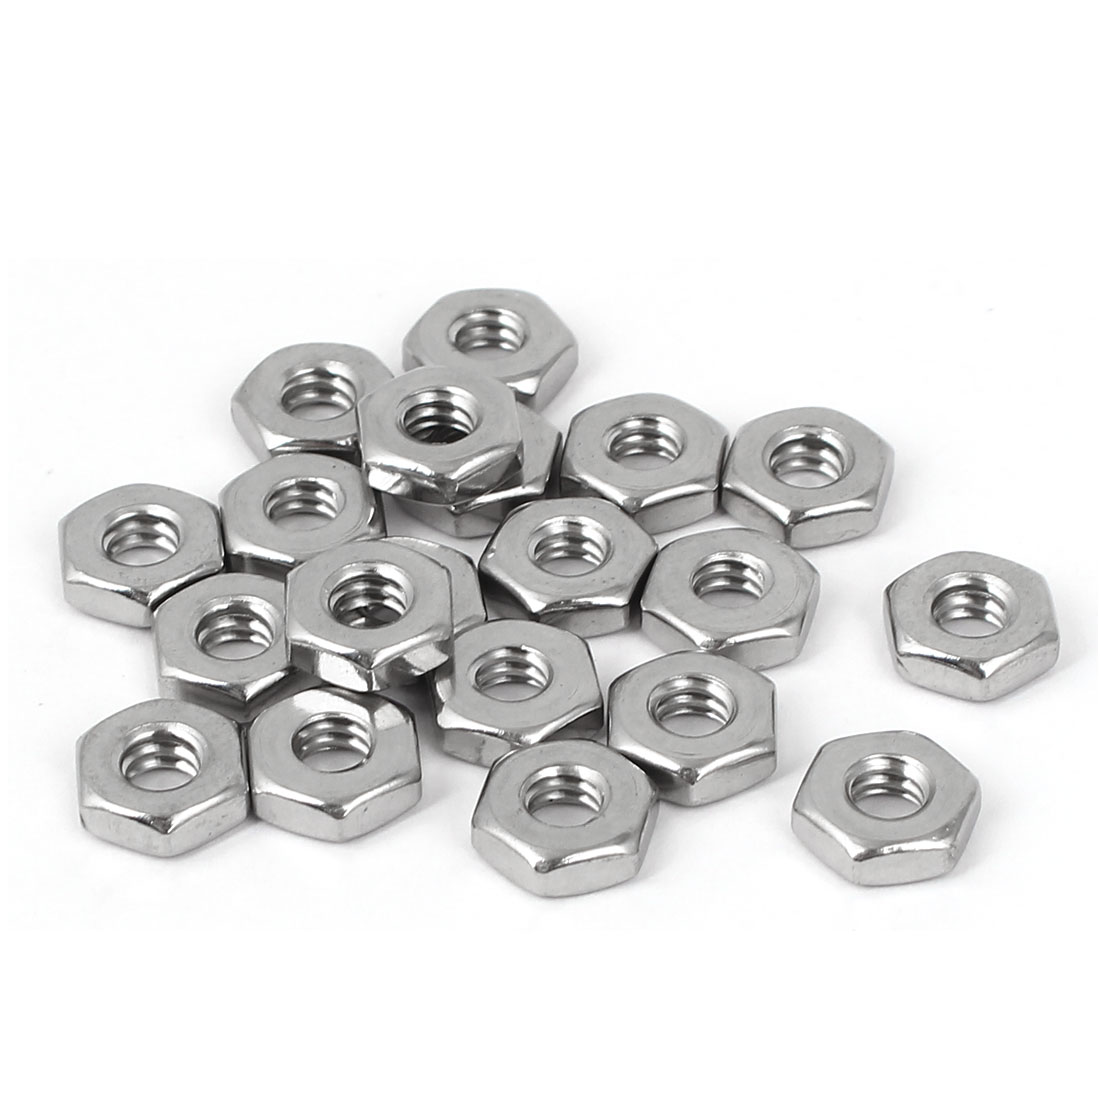 10#-24 304 Stainless Steel Hex Nut Fastener 20pcs for Screw Bolt